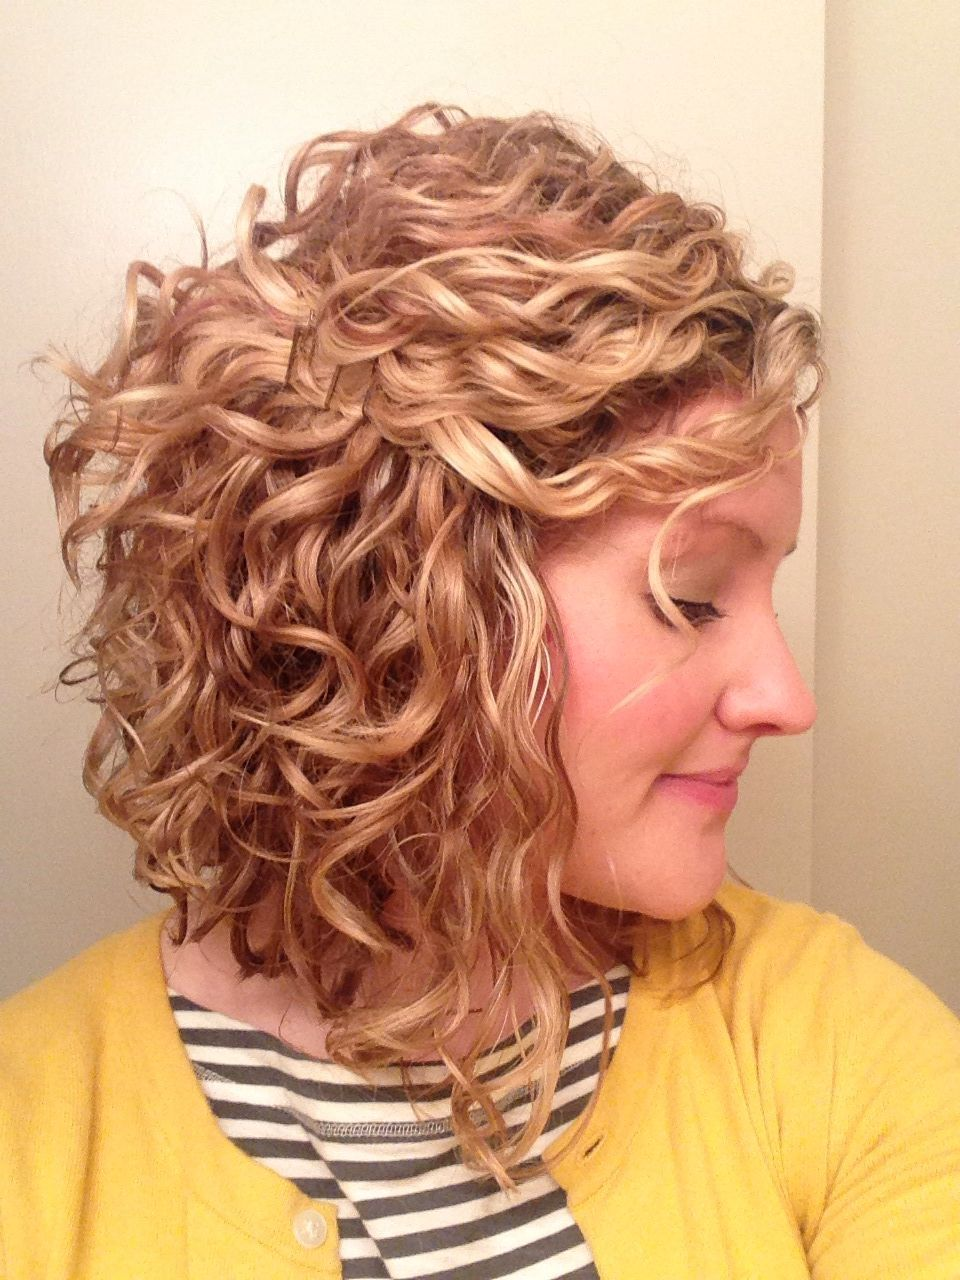 How To Get Beautiful Natural Curly Hair Pinterest Curly Hair